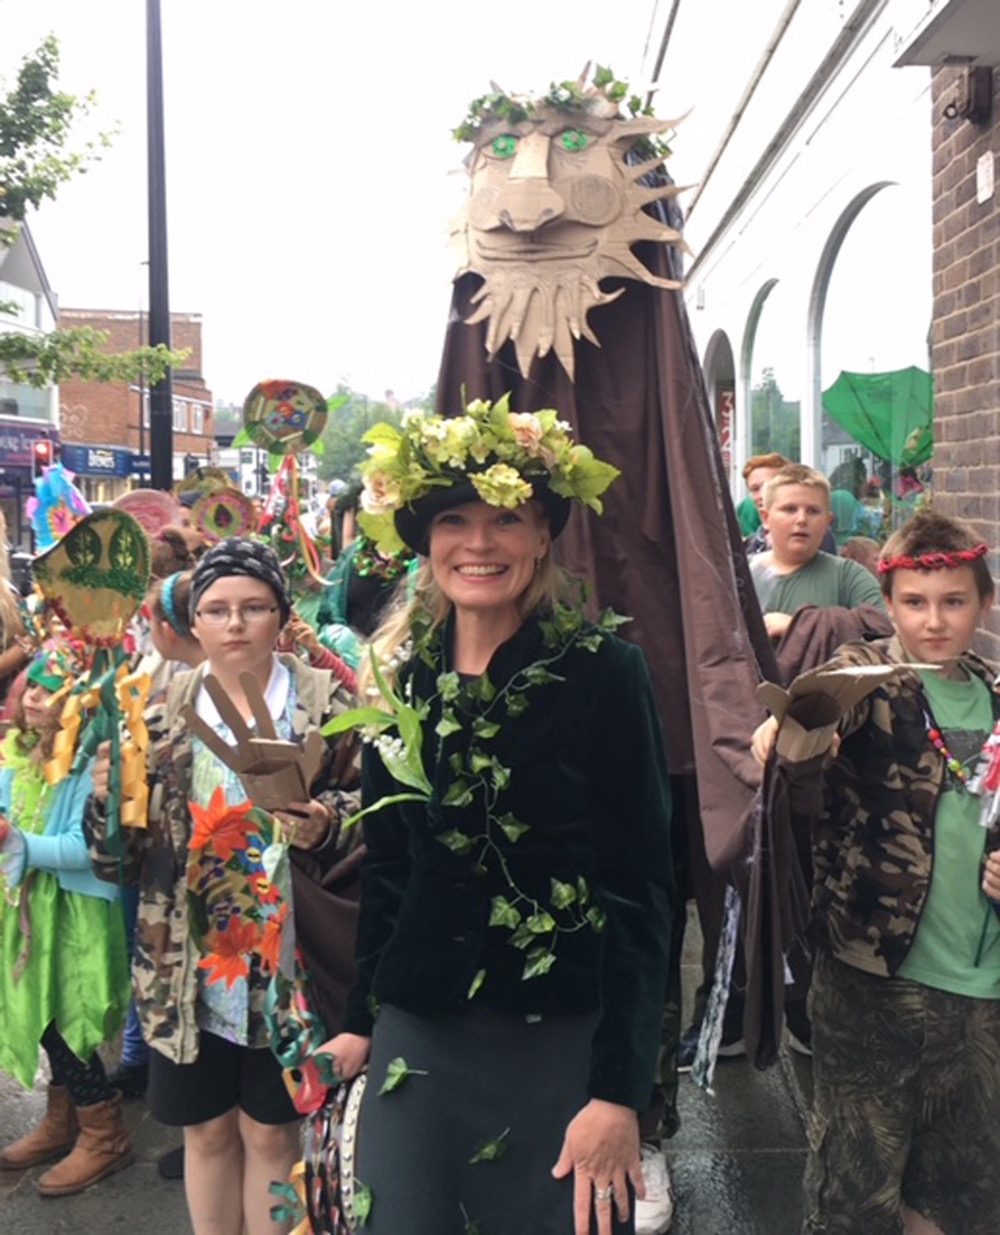 holy-cross-summer-parade-mrs-dart-wood-giant